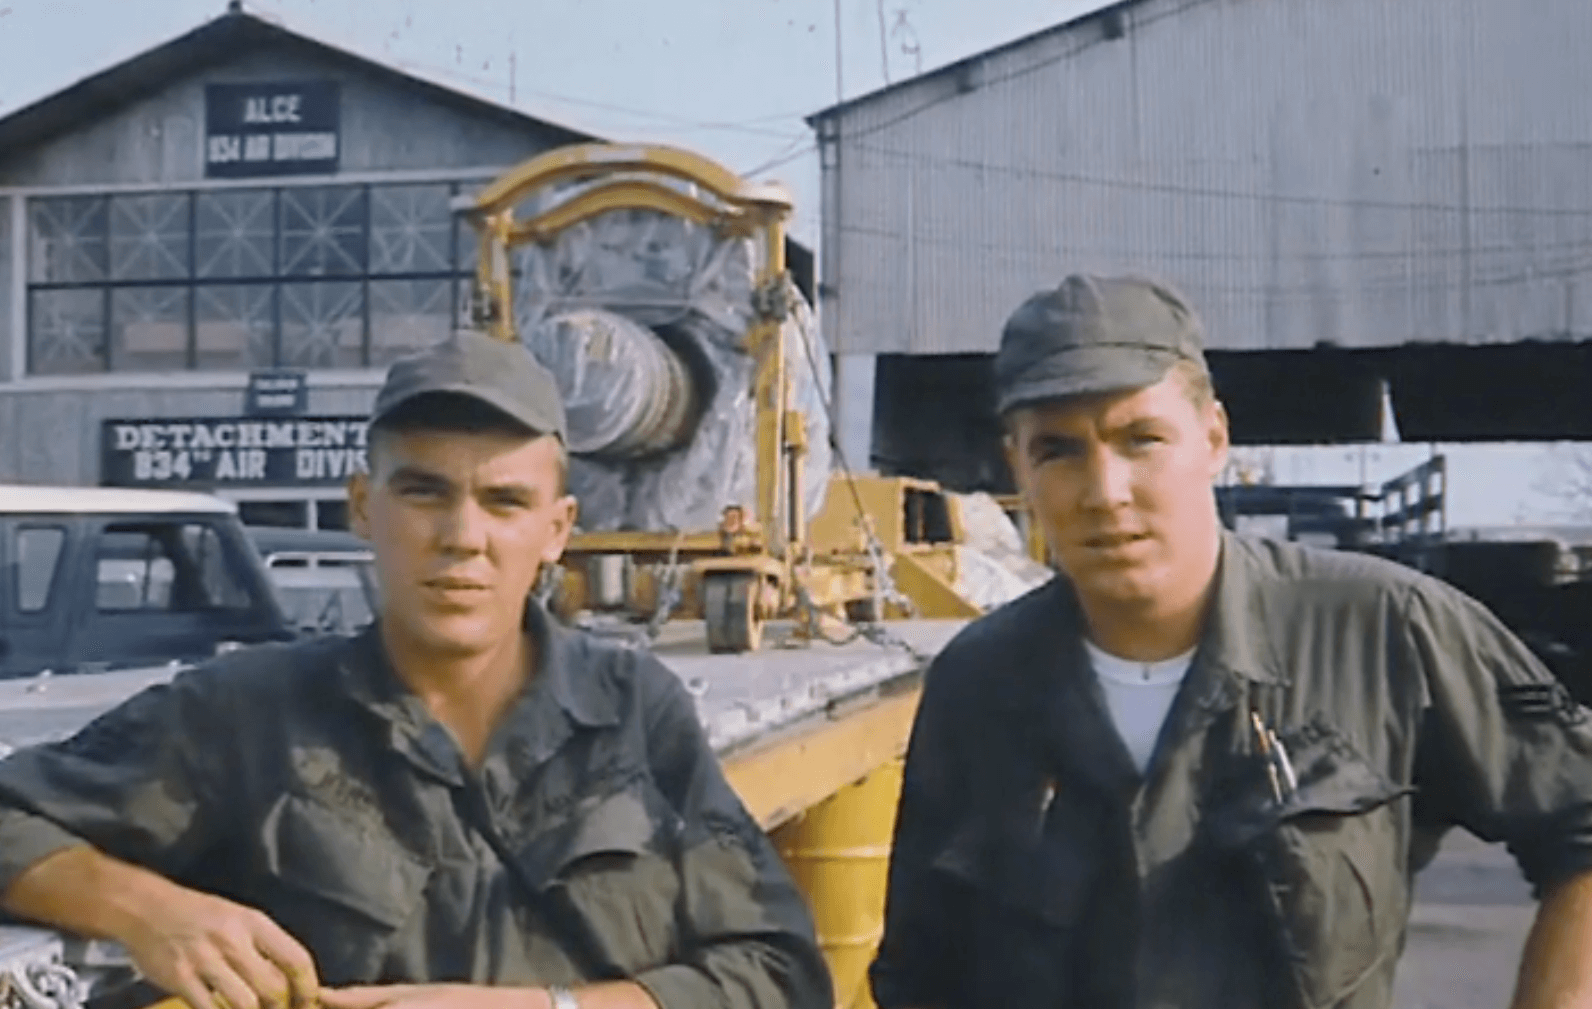 Two young US soldiers who look very similar, standing outside an Air Force base.